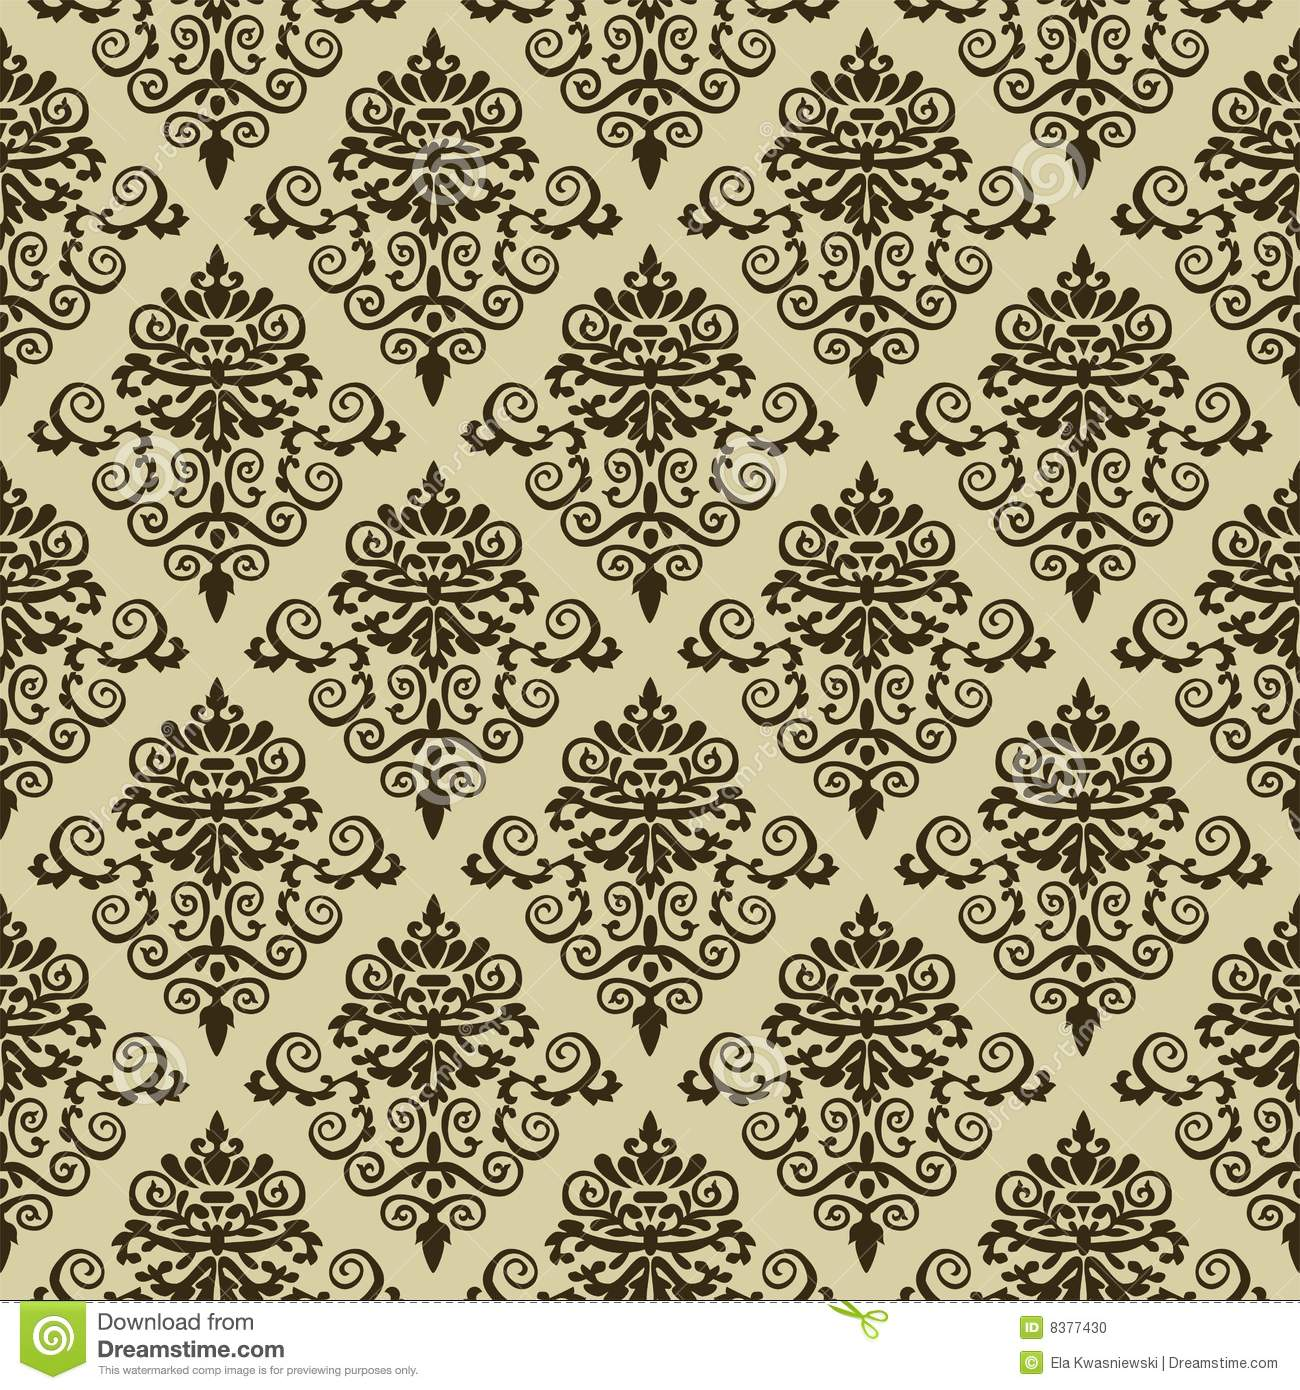 Seamless damask pattern wallpaper. Seamless Damask Pattern Wallpaper Stock Photo   Image  8377430